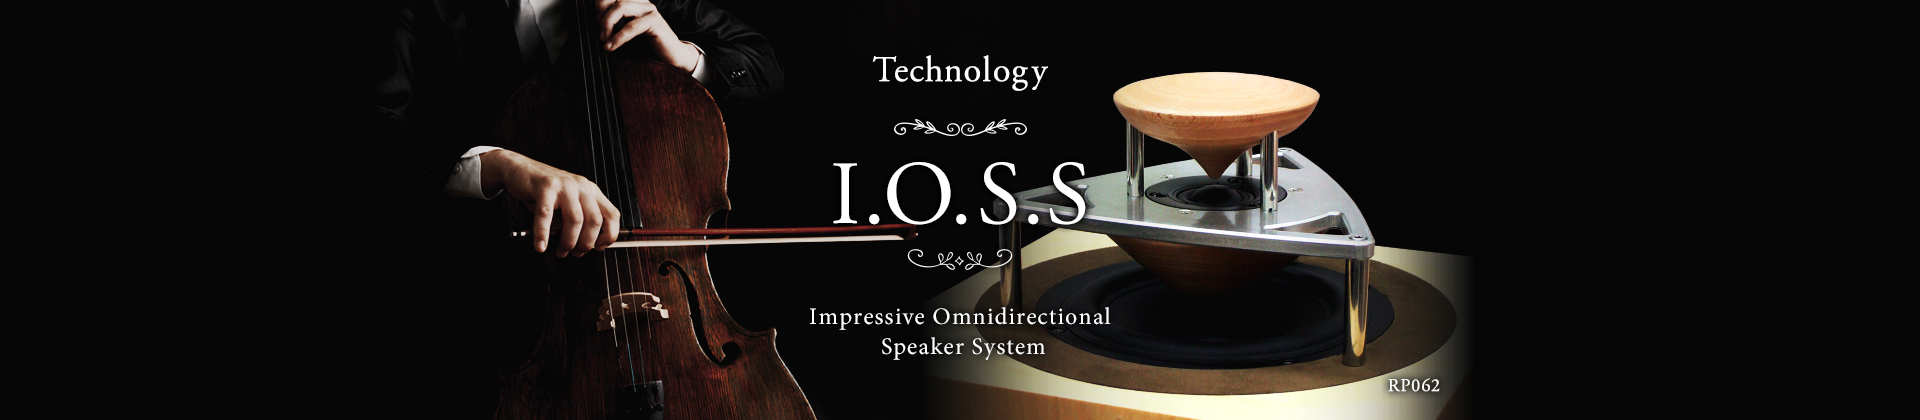 High Quality Sound|IOSS|Impressive Omnidirectional Speaker System